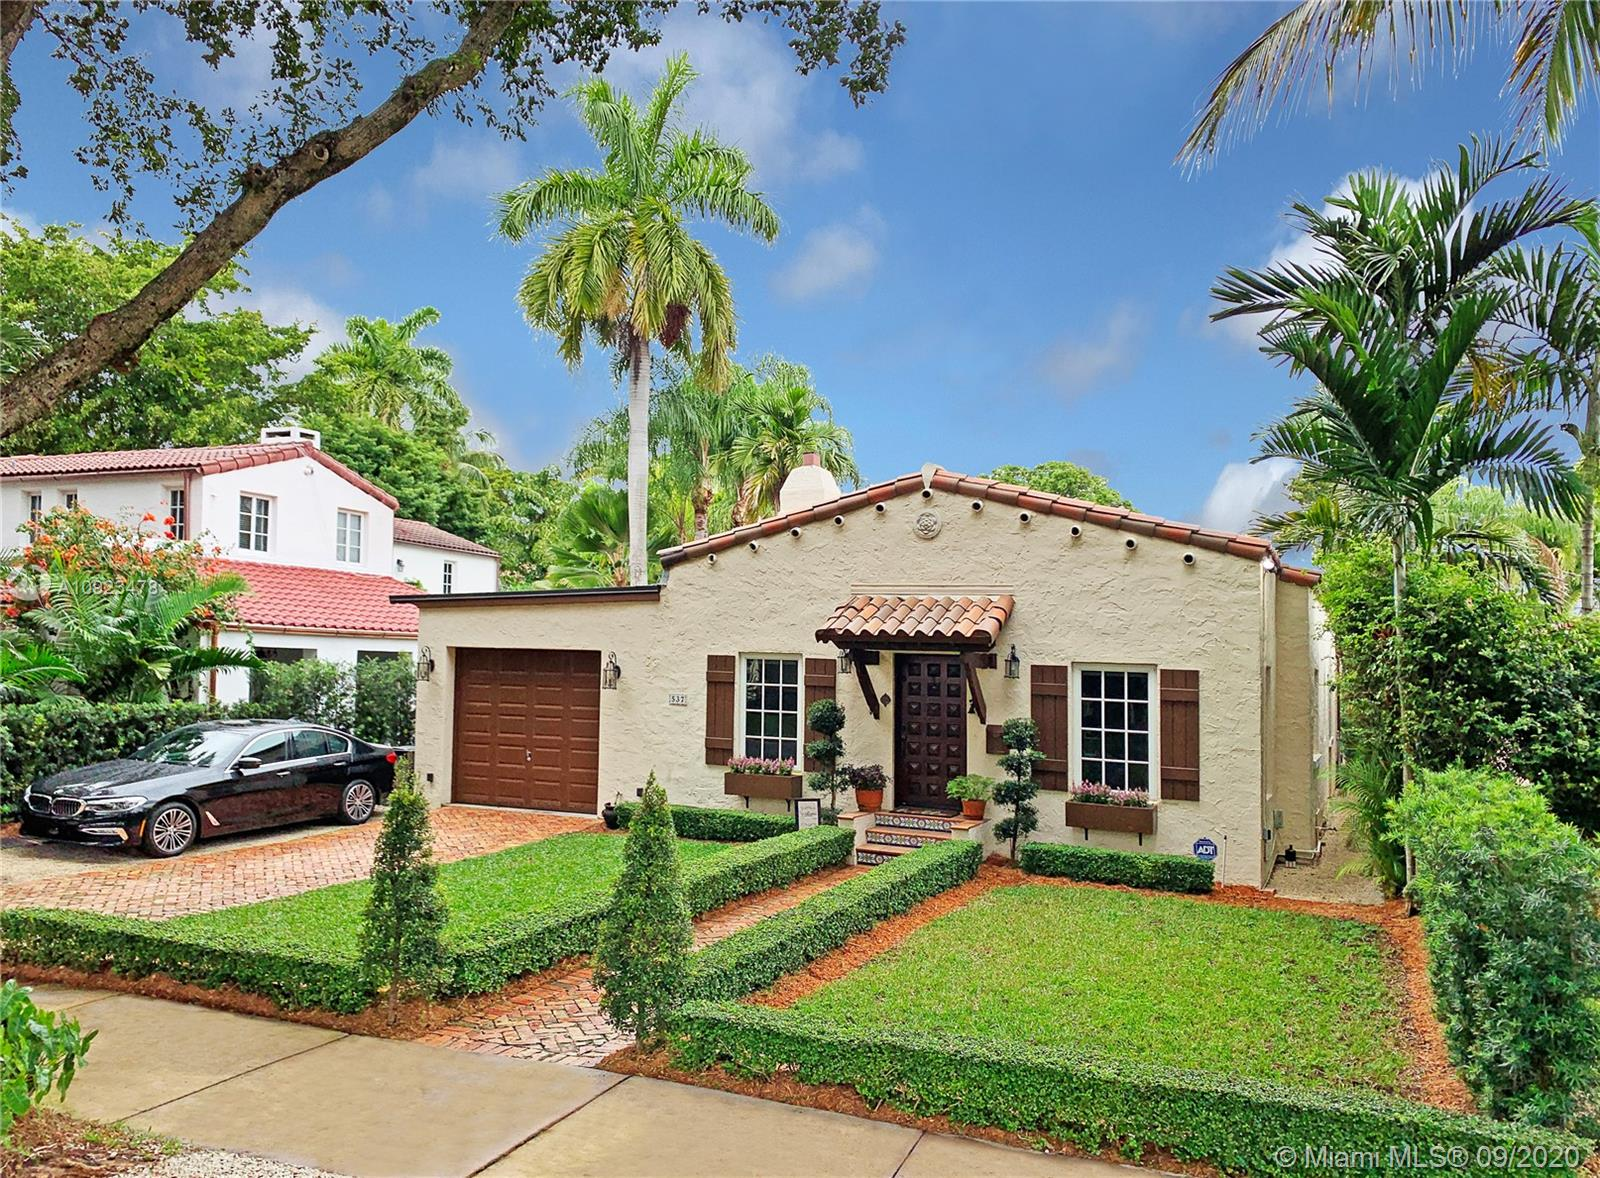 537  San Lorenzo Ave  For Sale A10923478, FL